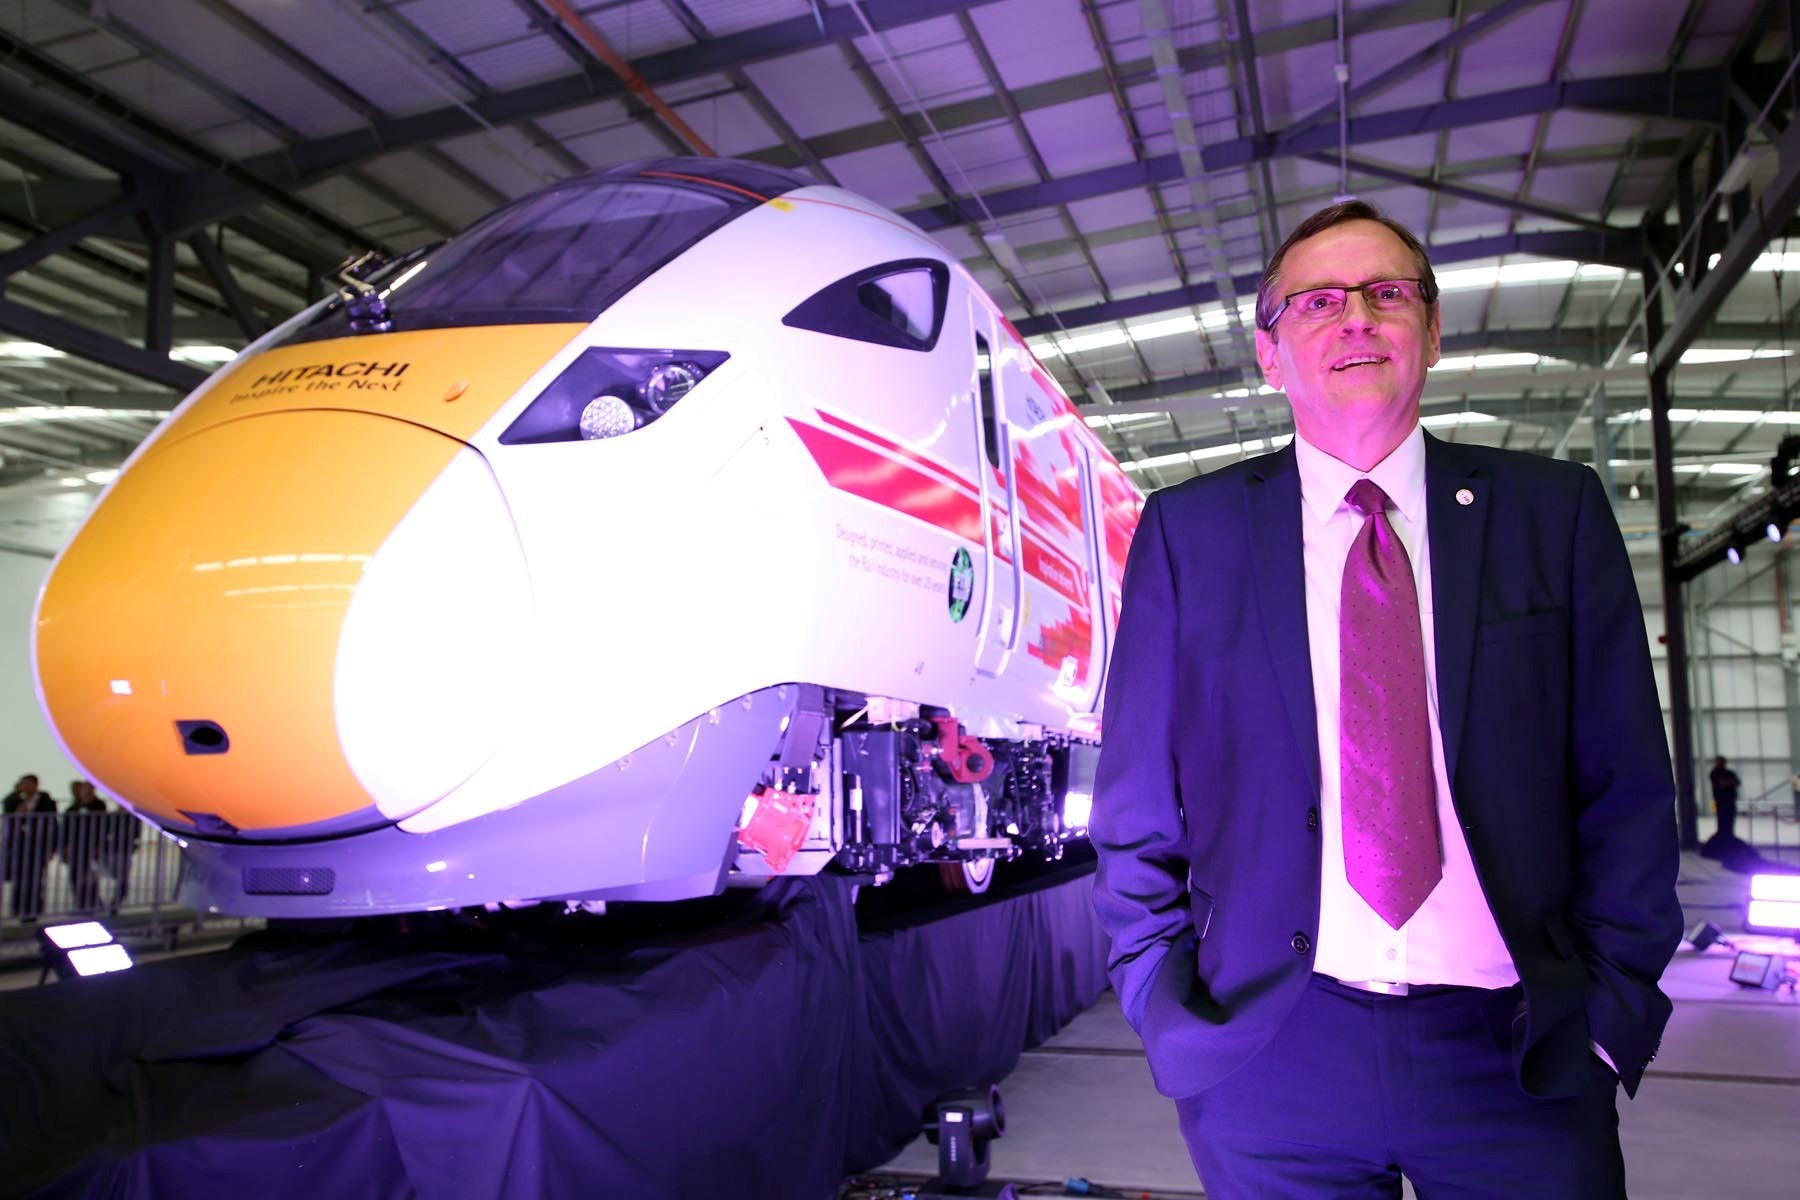 Sedgefield constituency MP Phil Wilson at the opening of the Hitachi Rail Europe plant at Newton Aycliffe. Picture: CHRIS BOOTH